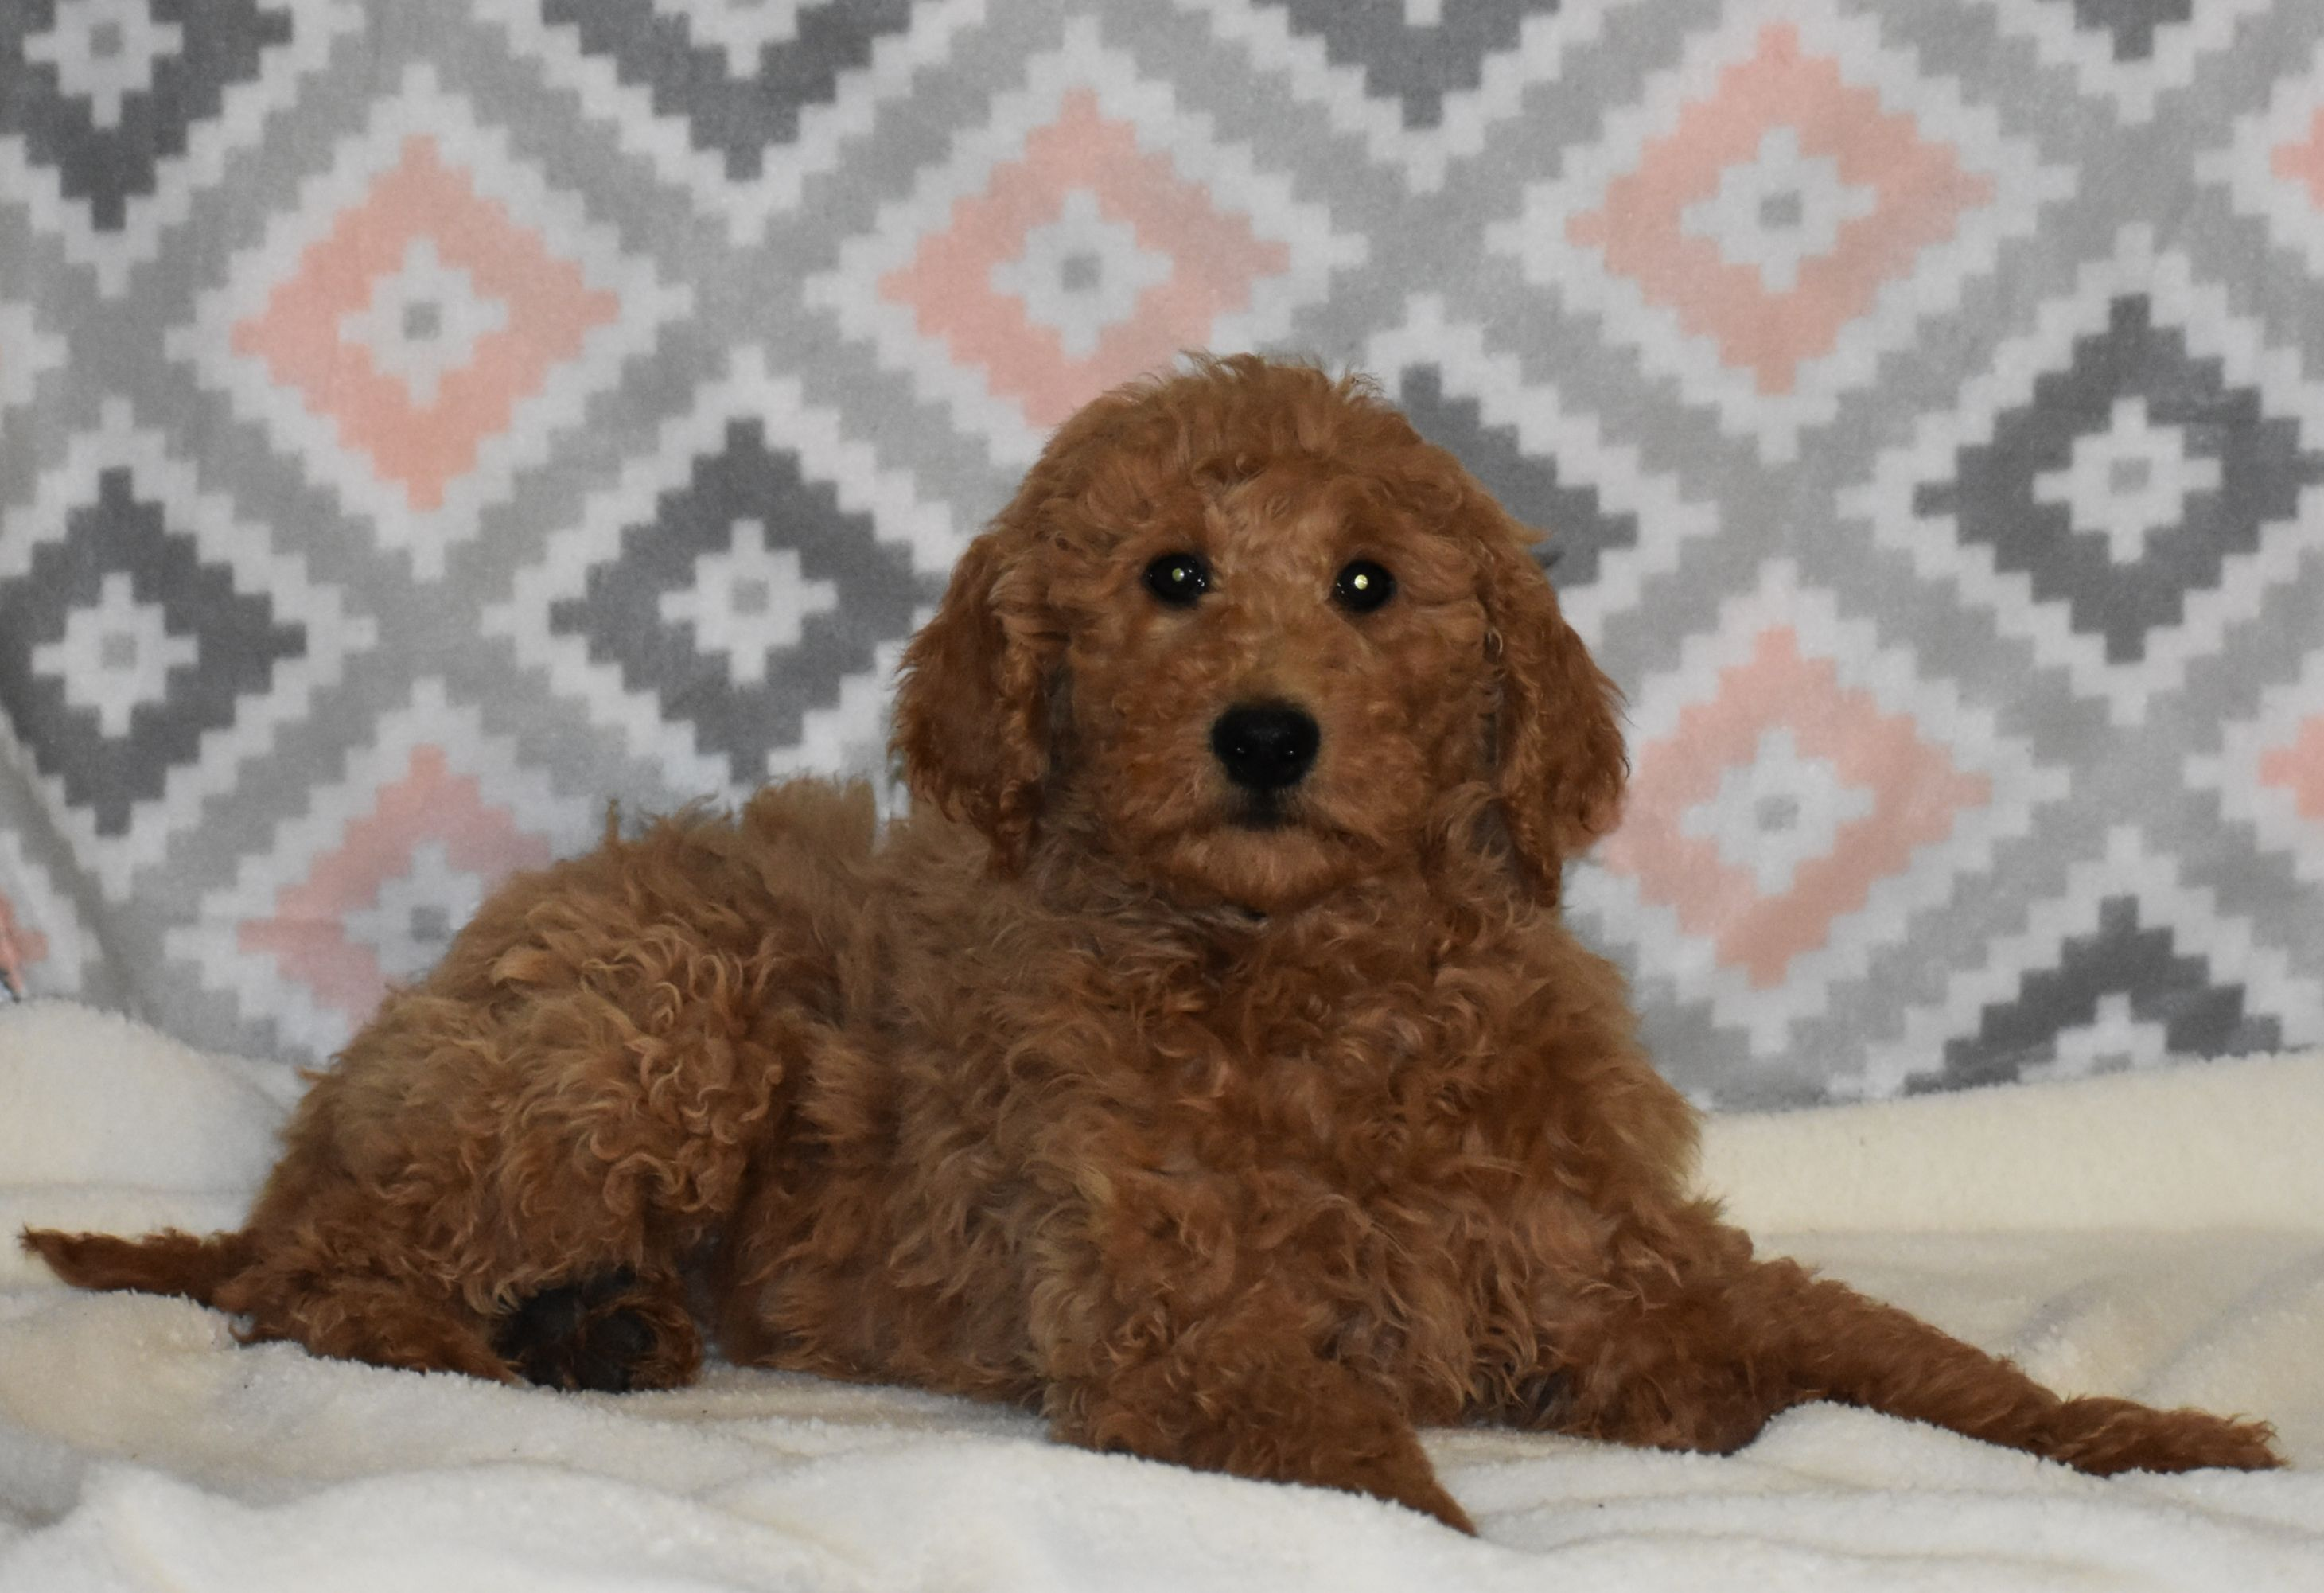 Meet Twyla F1b Girl Goldendoodle Puppy For Sale In Syracuse Indiana Goldendoodle Puppy For Sale Funny Cat Gifts Goldendoodle Puppy